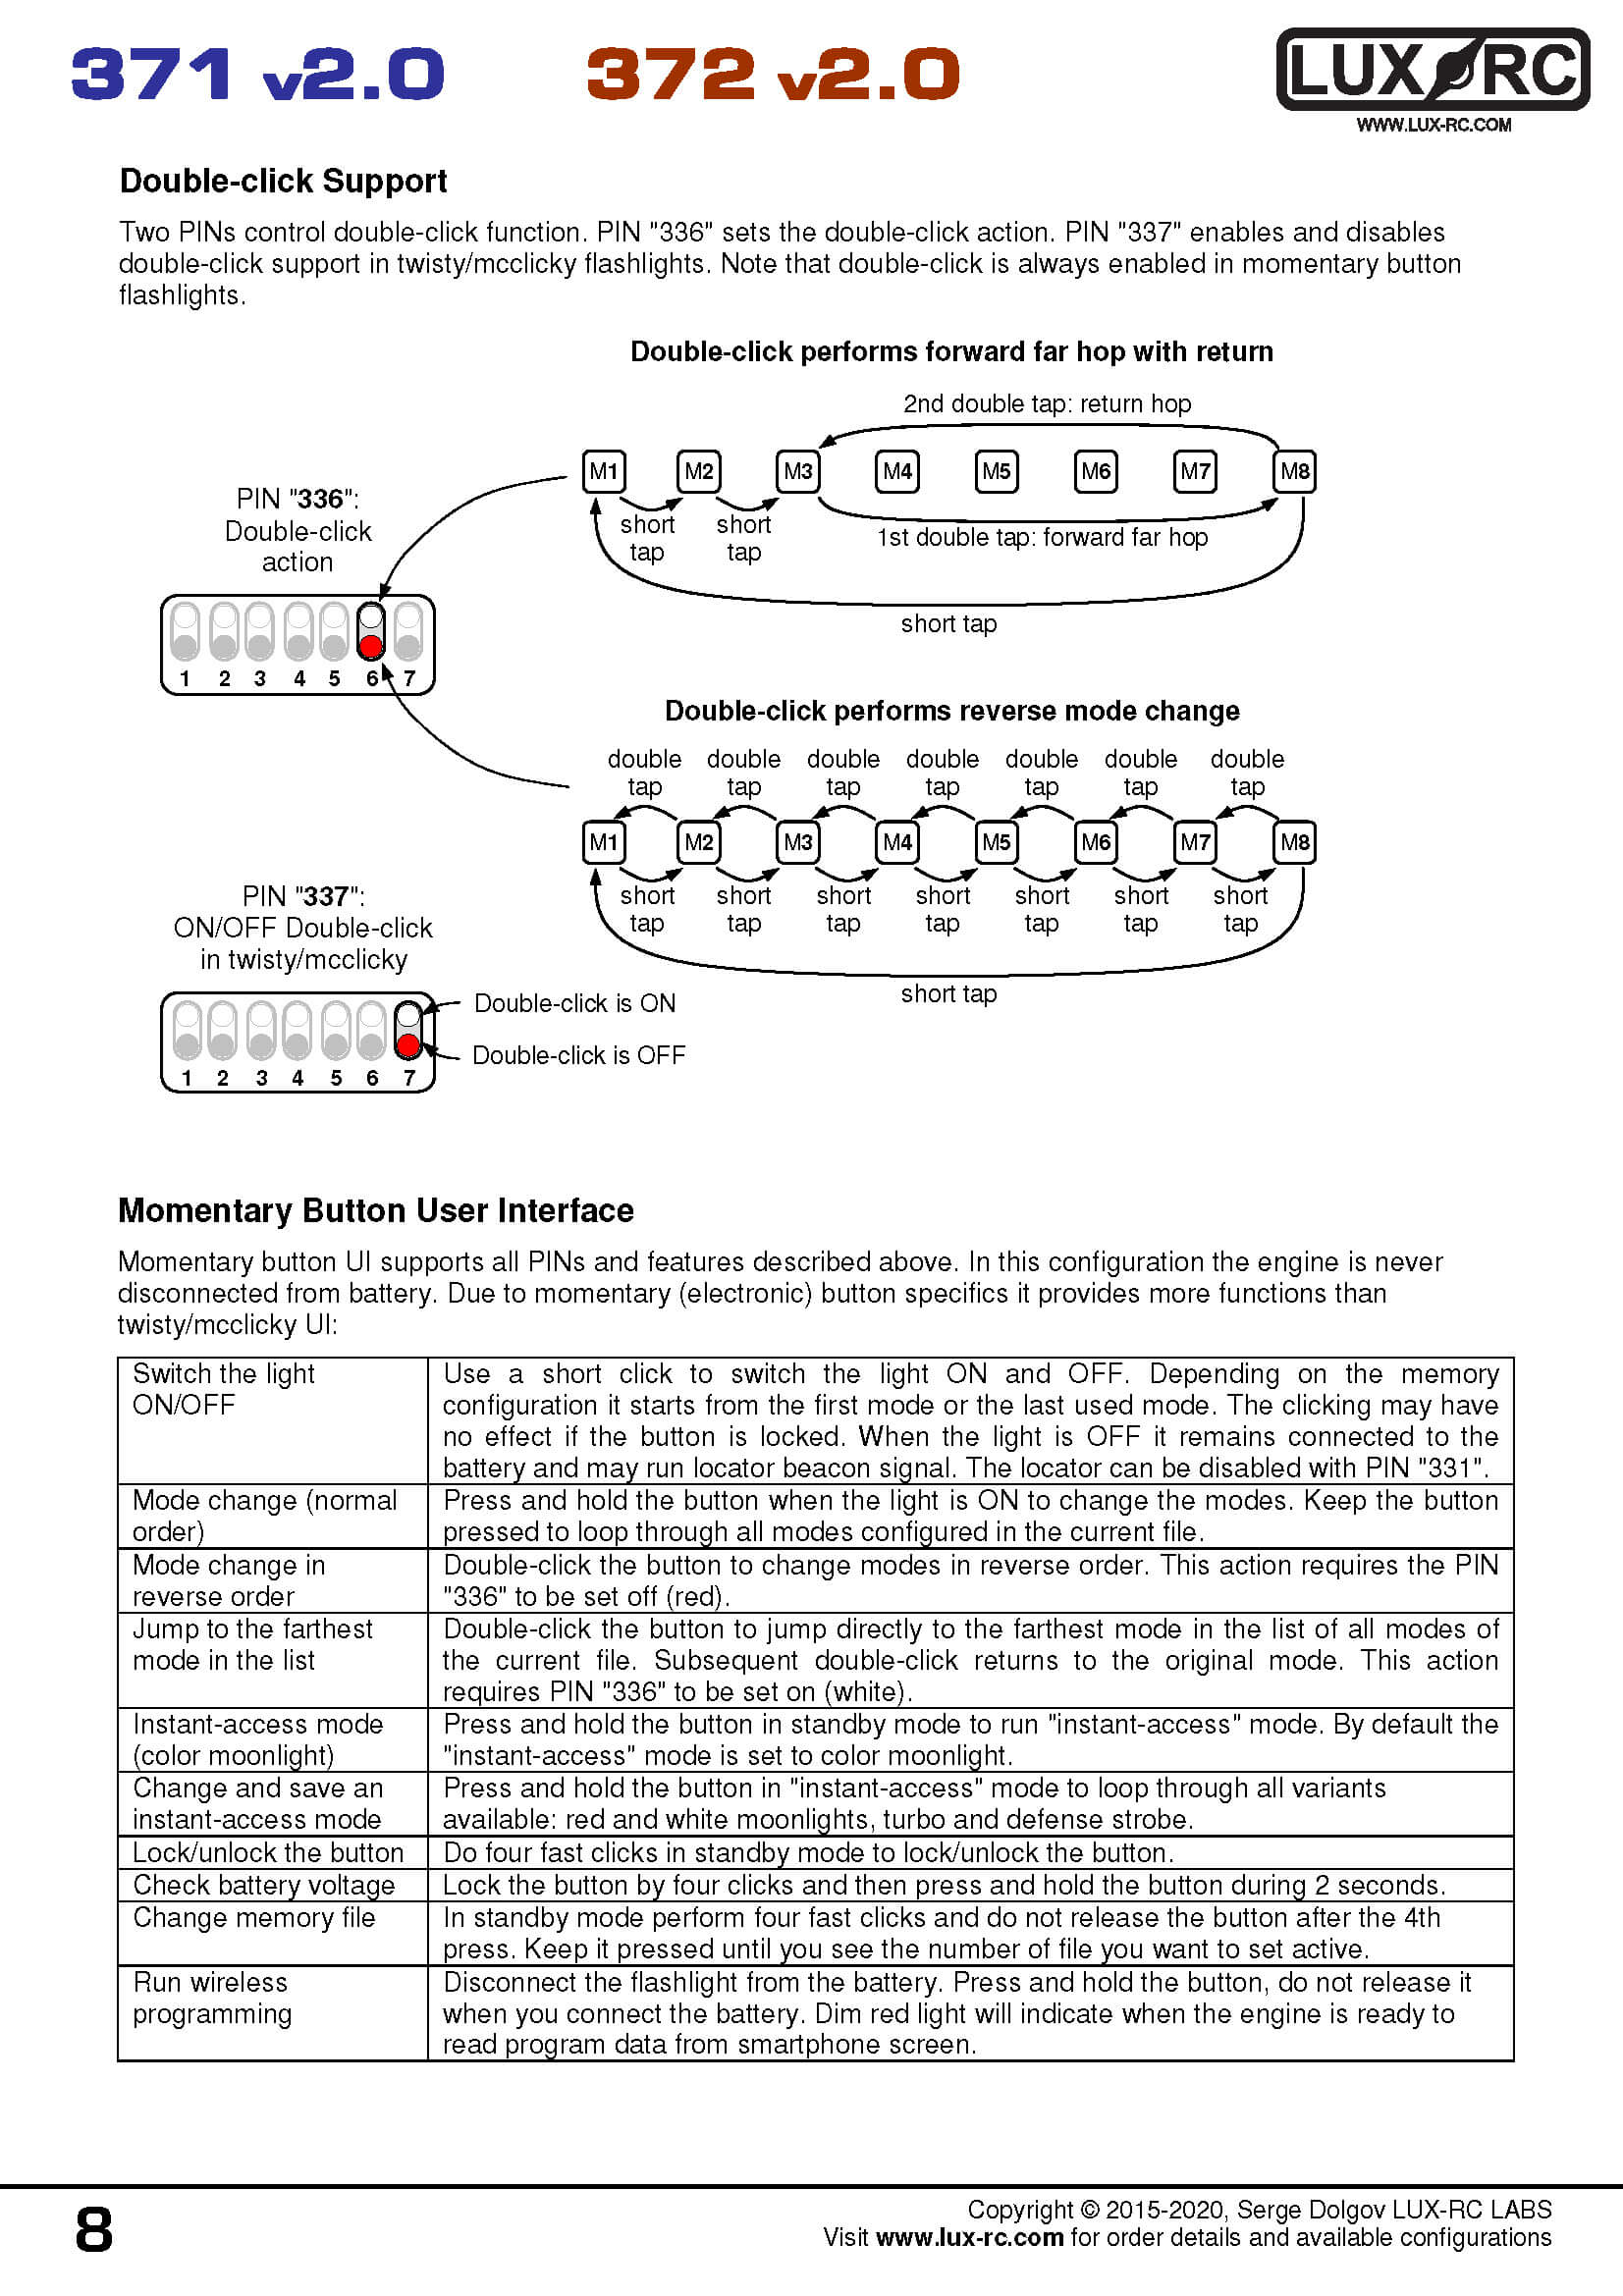 lux-rc 371d v2.0 manual in image format page 8